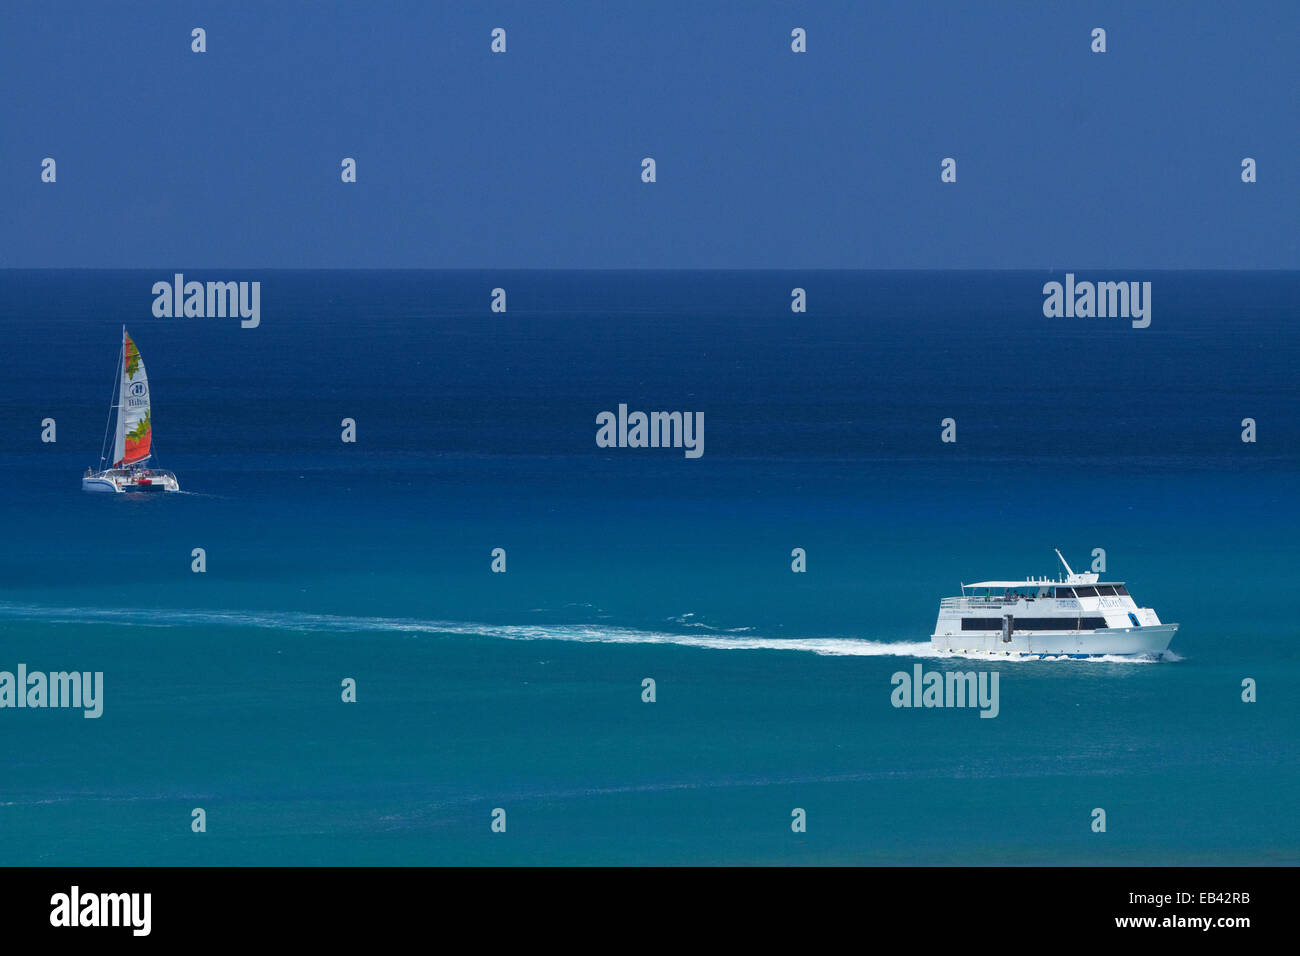 Catamaran and Atlantis tour boat, Waikiki, Honolulu, Oahu, Hawaii, USA - Stock Image